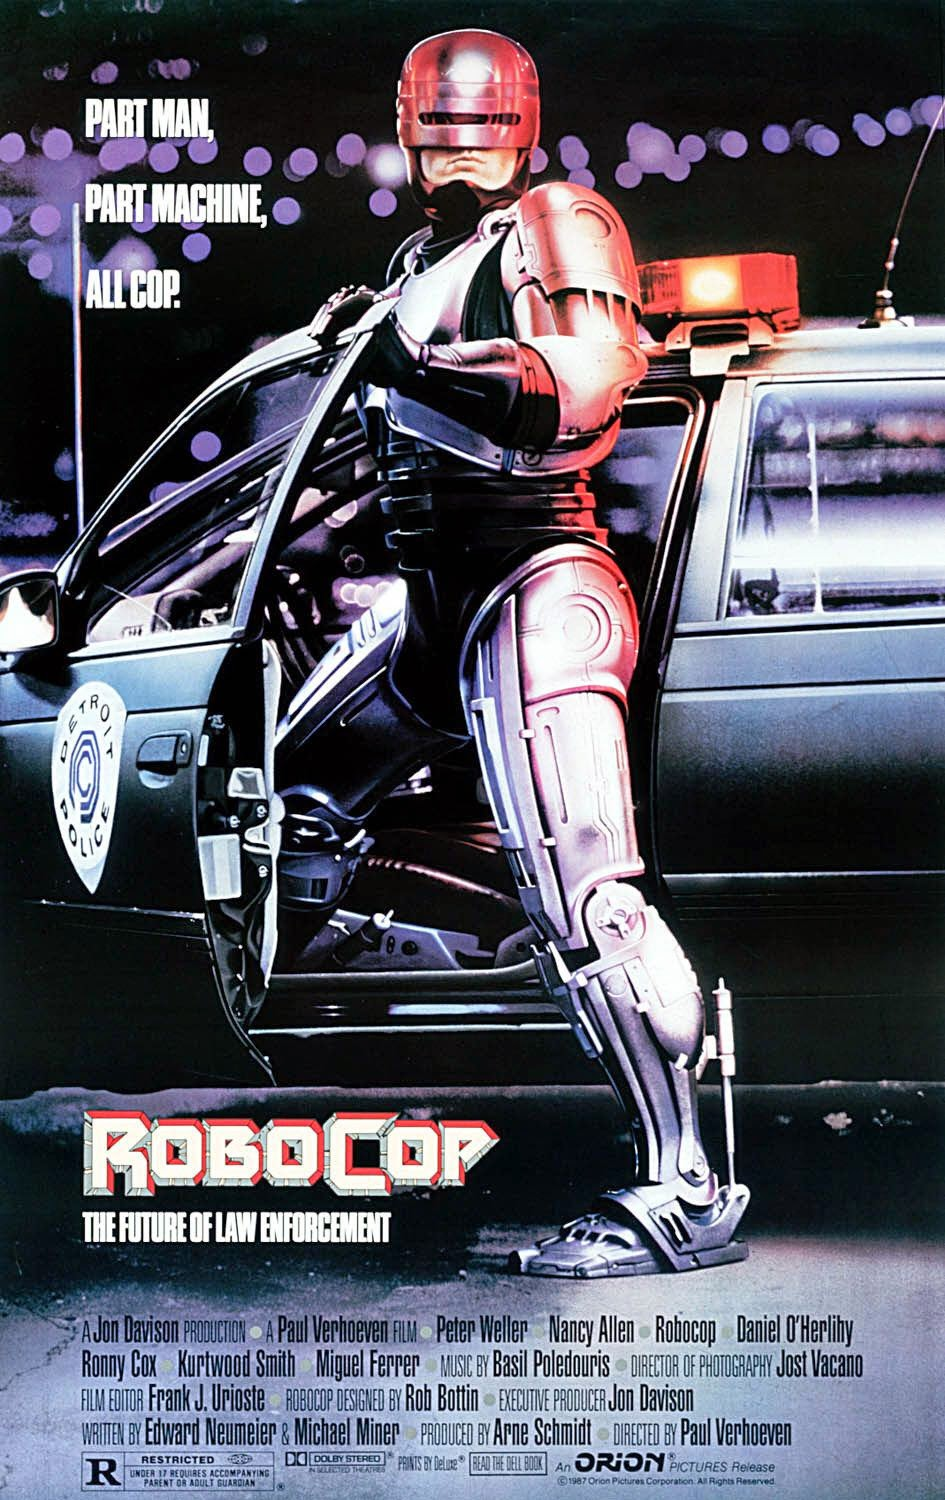 Robocop - Director's Cut - New Digital Print - Friday 25th July - 10:30pm - Light House Cinema